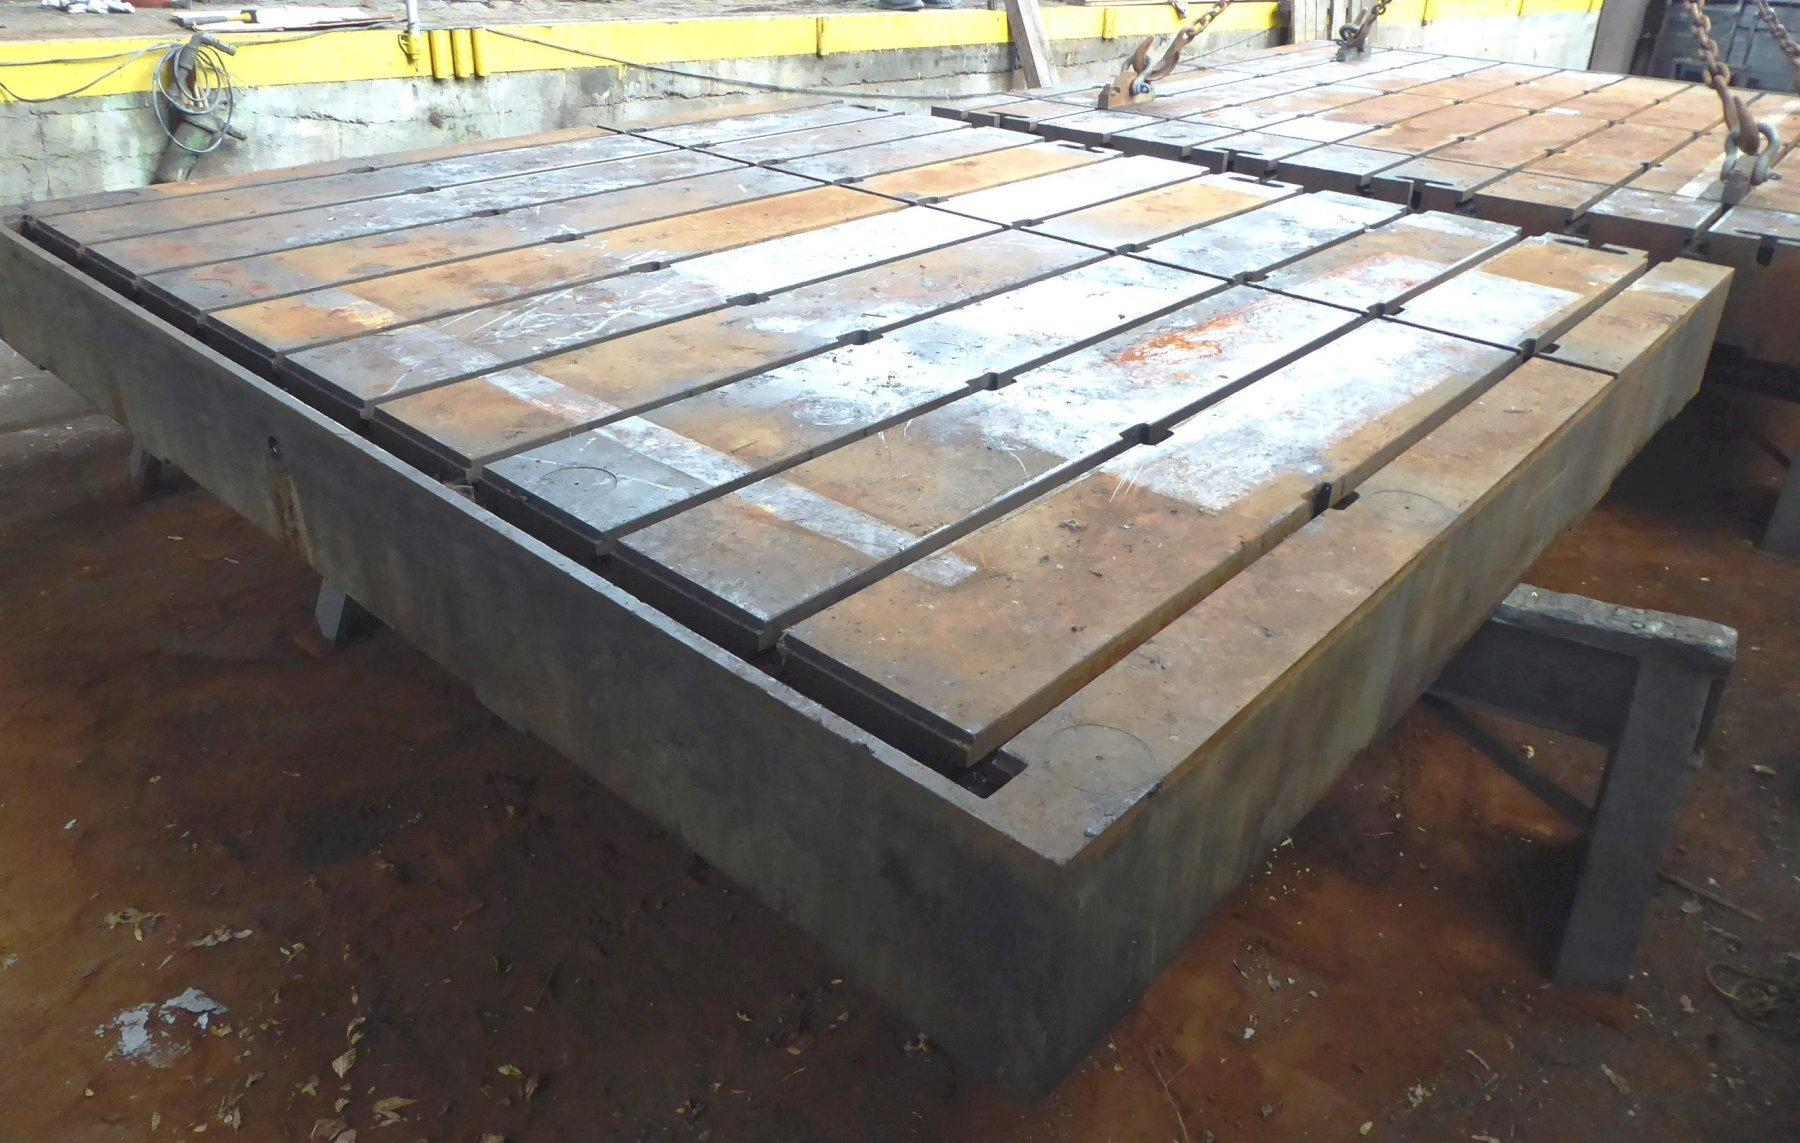 "108"" x 120"" Lake Shore T-Slotted Floor Plate, 12"" Thick, (10) T-Slots, Matching 144"" x 120"" Plate Available"